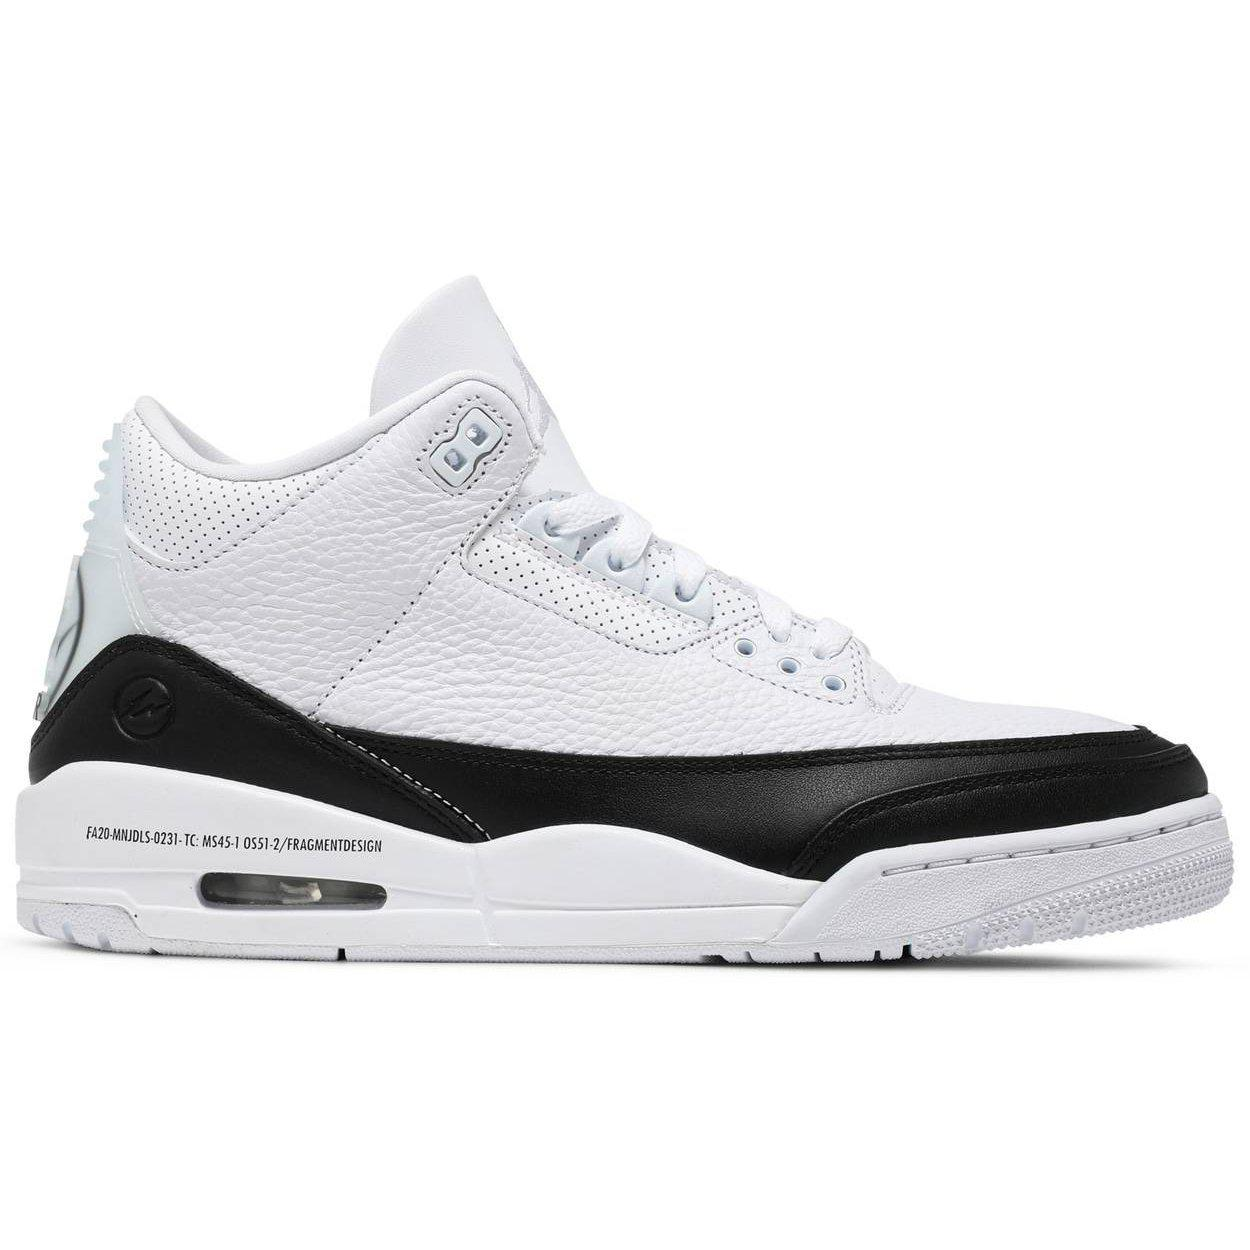 Nike Fragment Design x Air Jordan 3 Retro SP 'White' | Waves Never Die | Nike | Sneakers